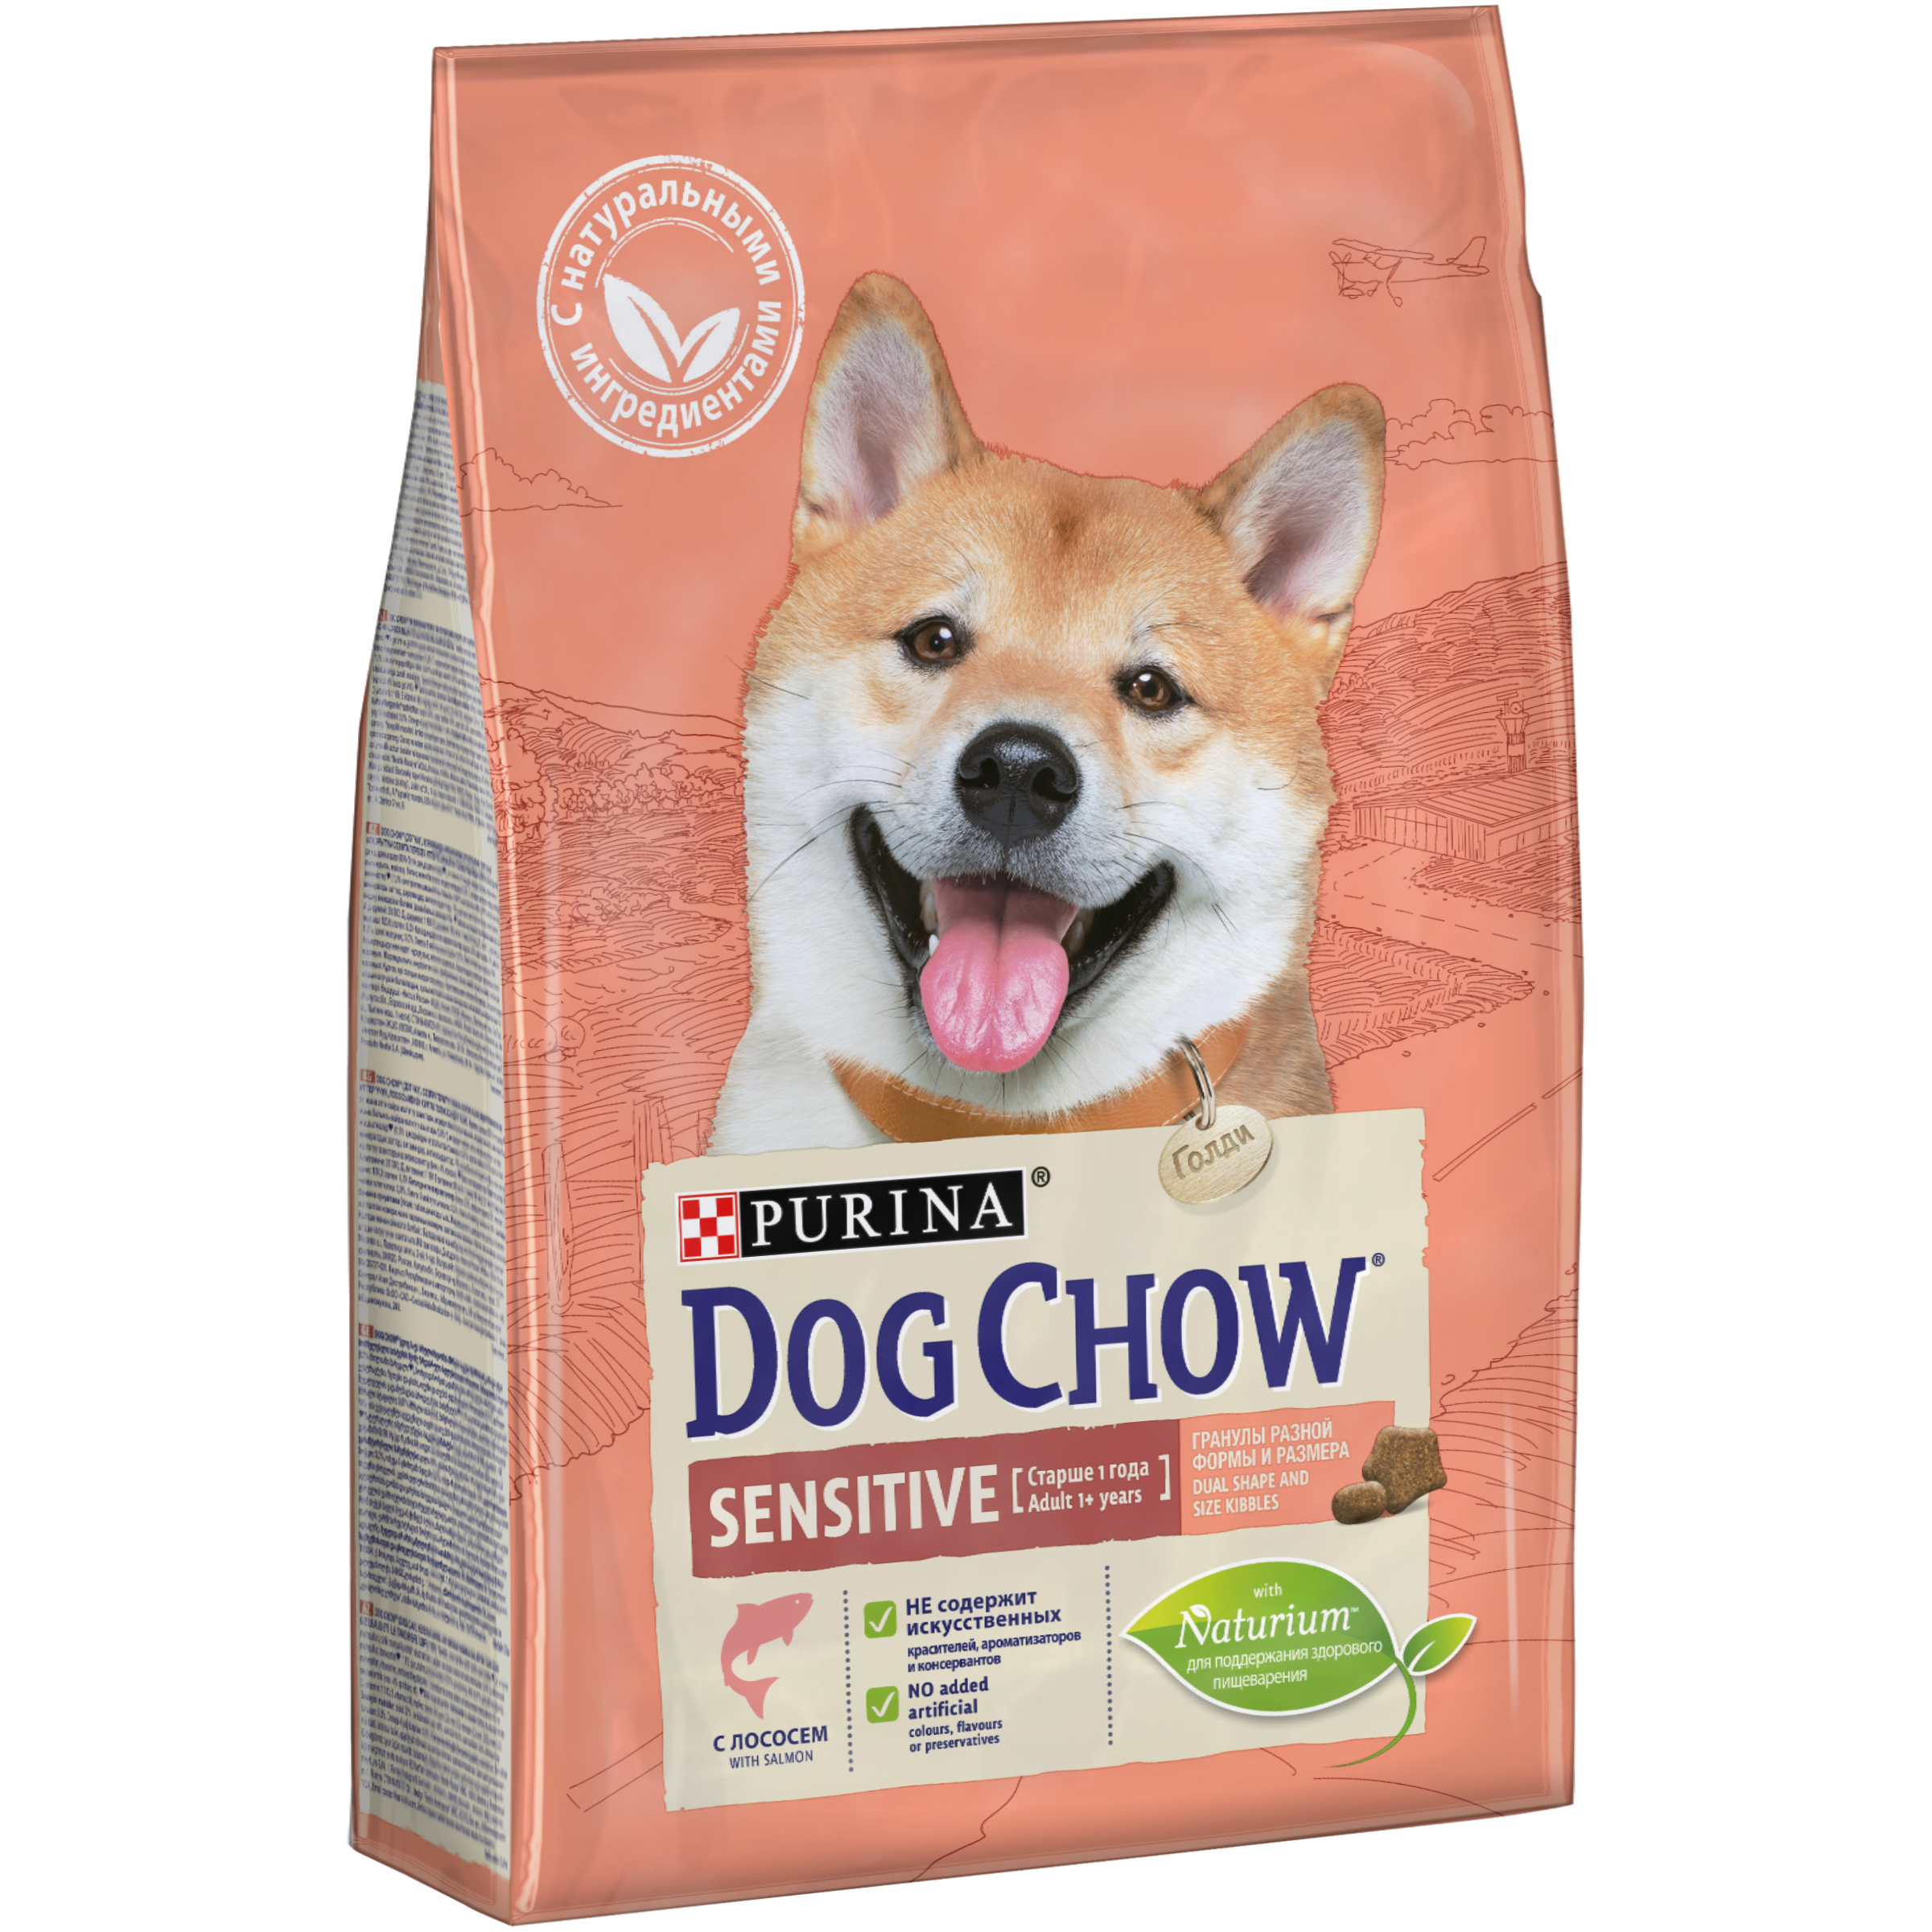 Dog Chow dry food for adult dogs with sensitive digestion, with salmon, Package, 2.5 kg dog food dog chow adult sensitive for adult dogs of all breeds with sensitive digestion salmon 2 5 kg